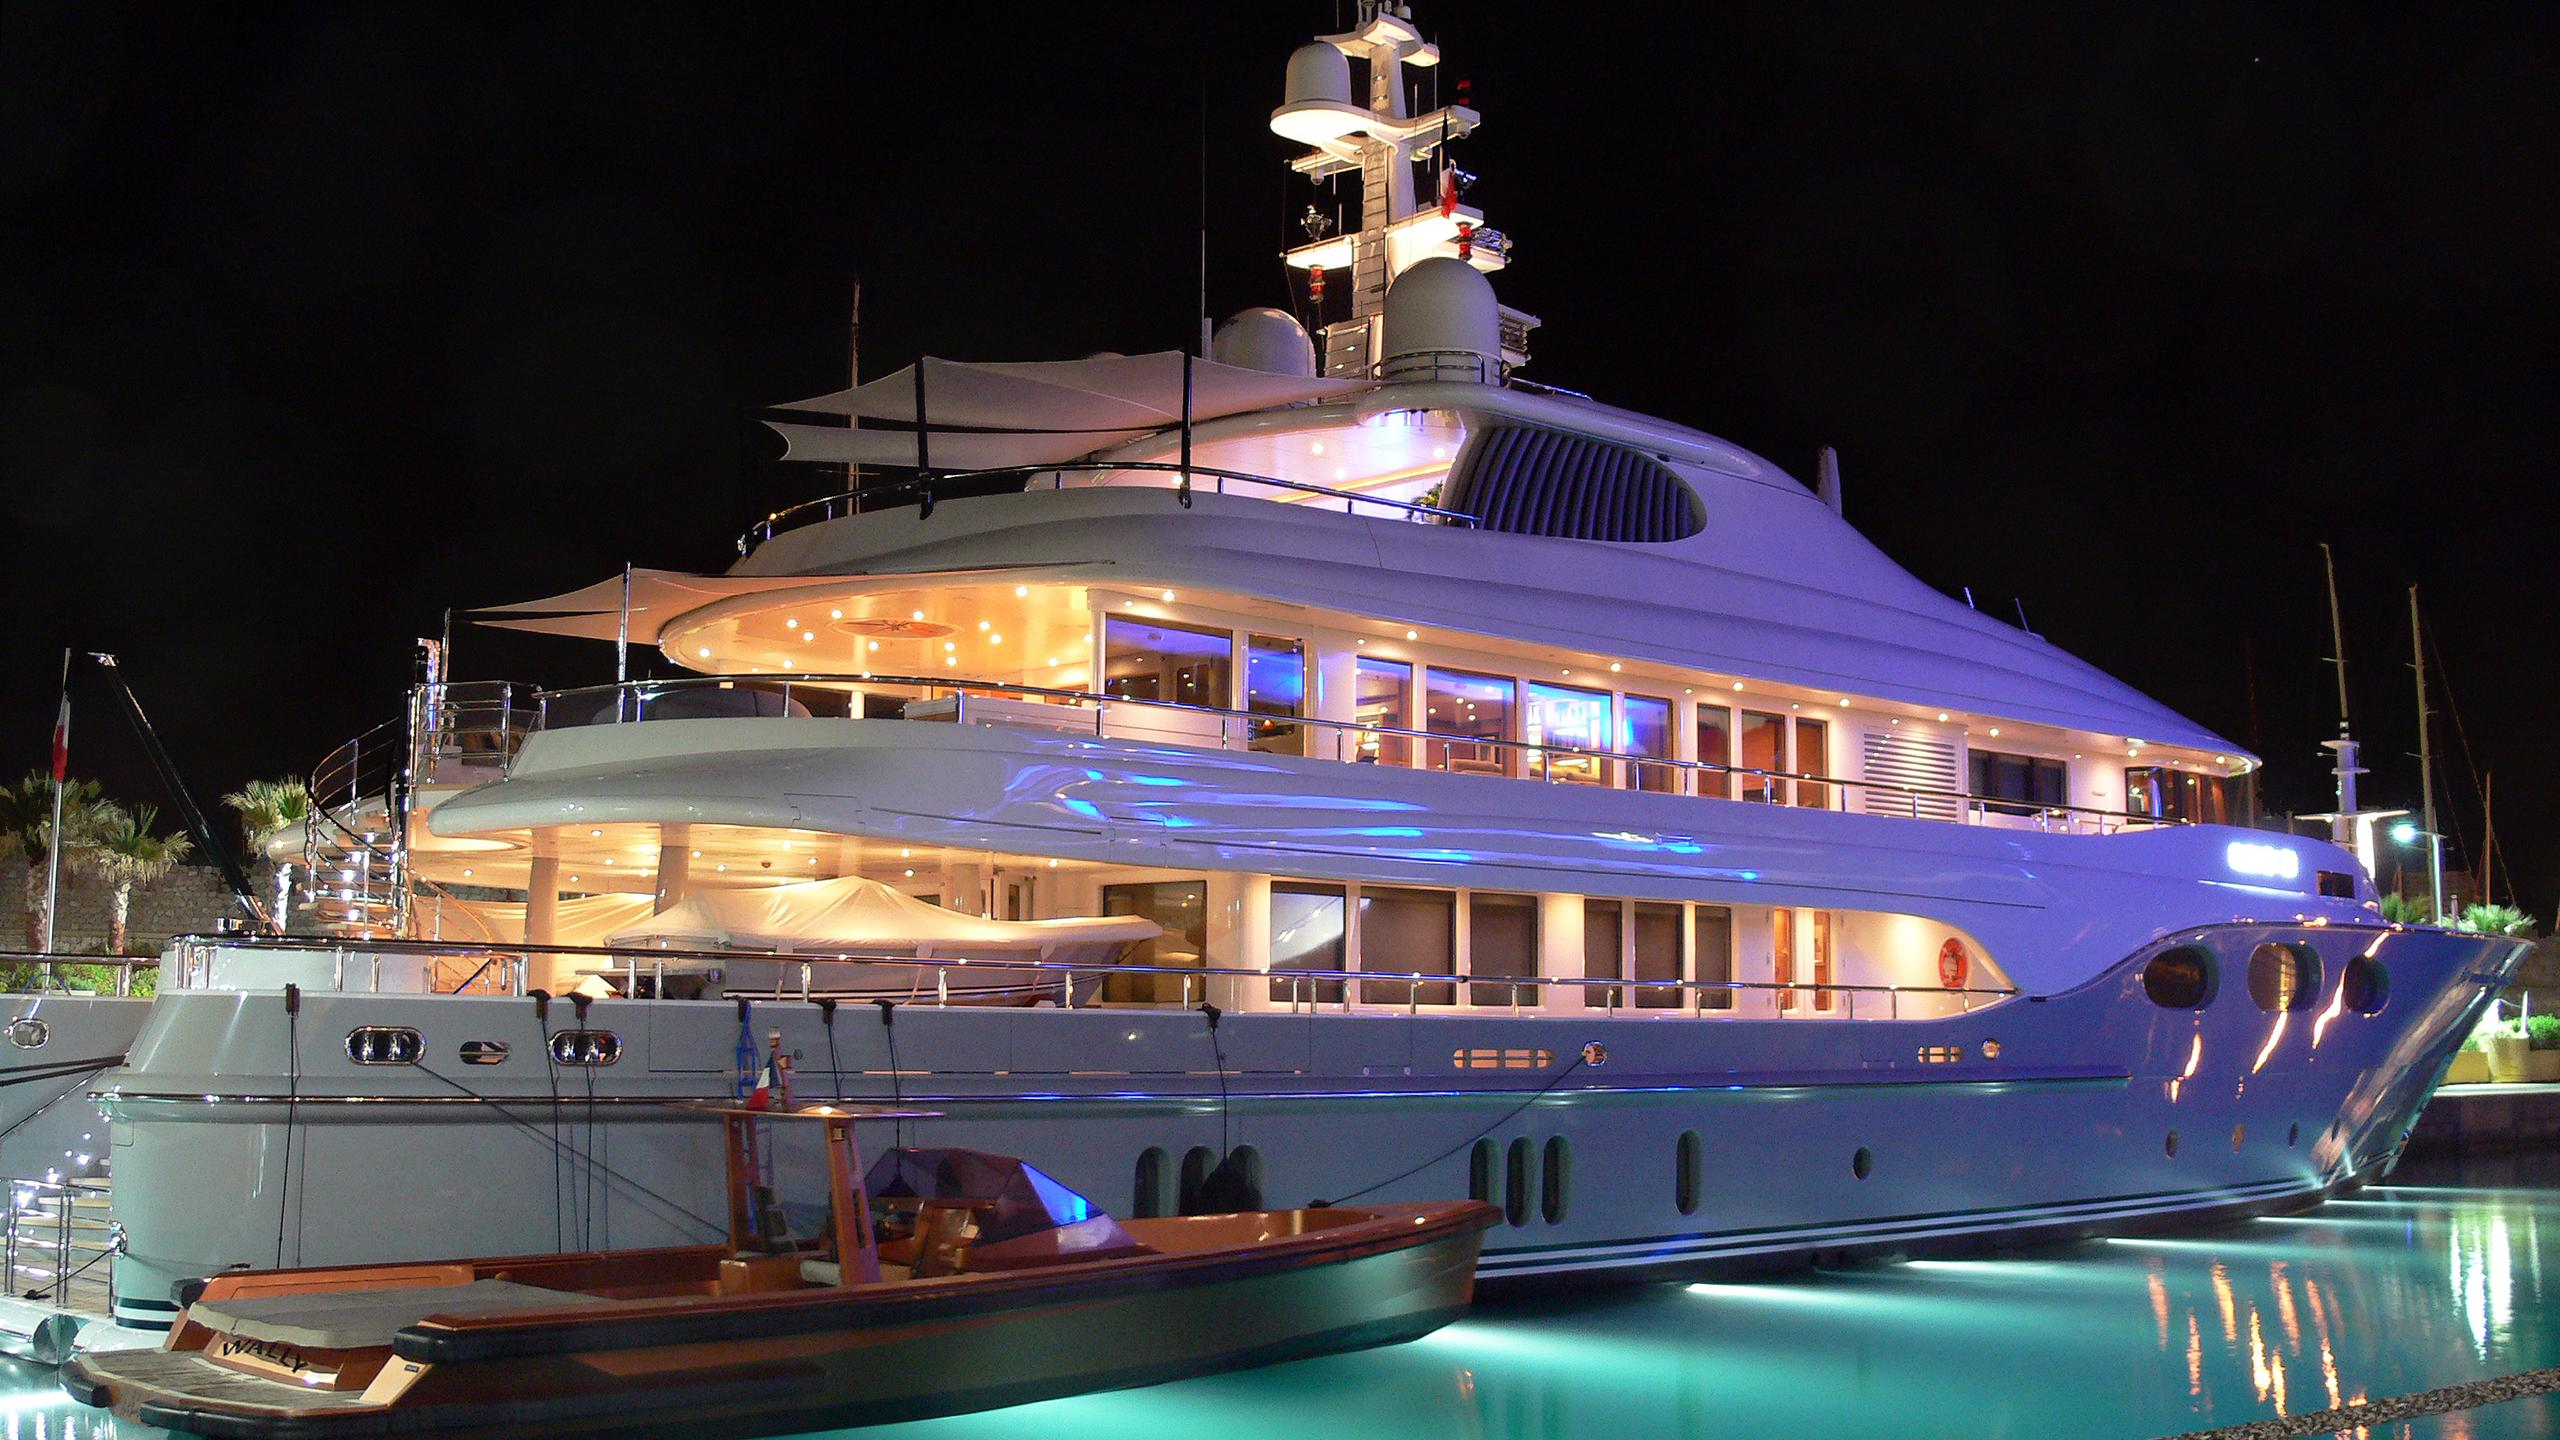 fortunate-sun-motor-yacht-oceanfast-2003-54m-by-night